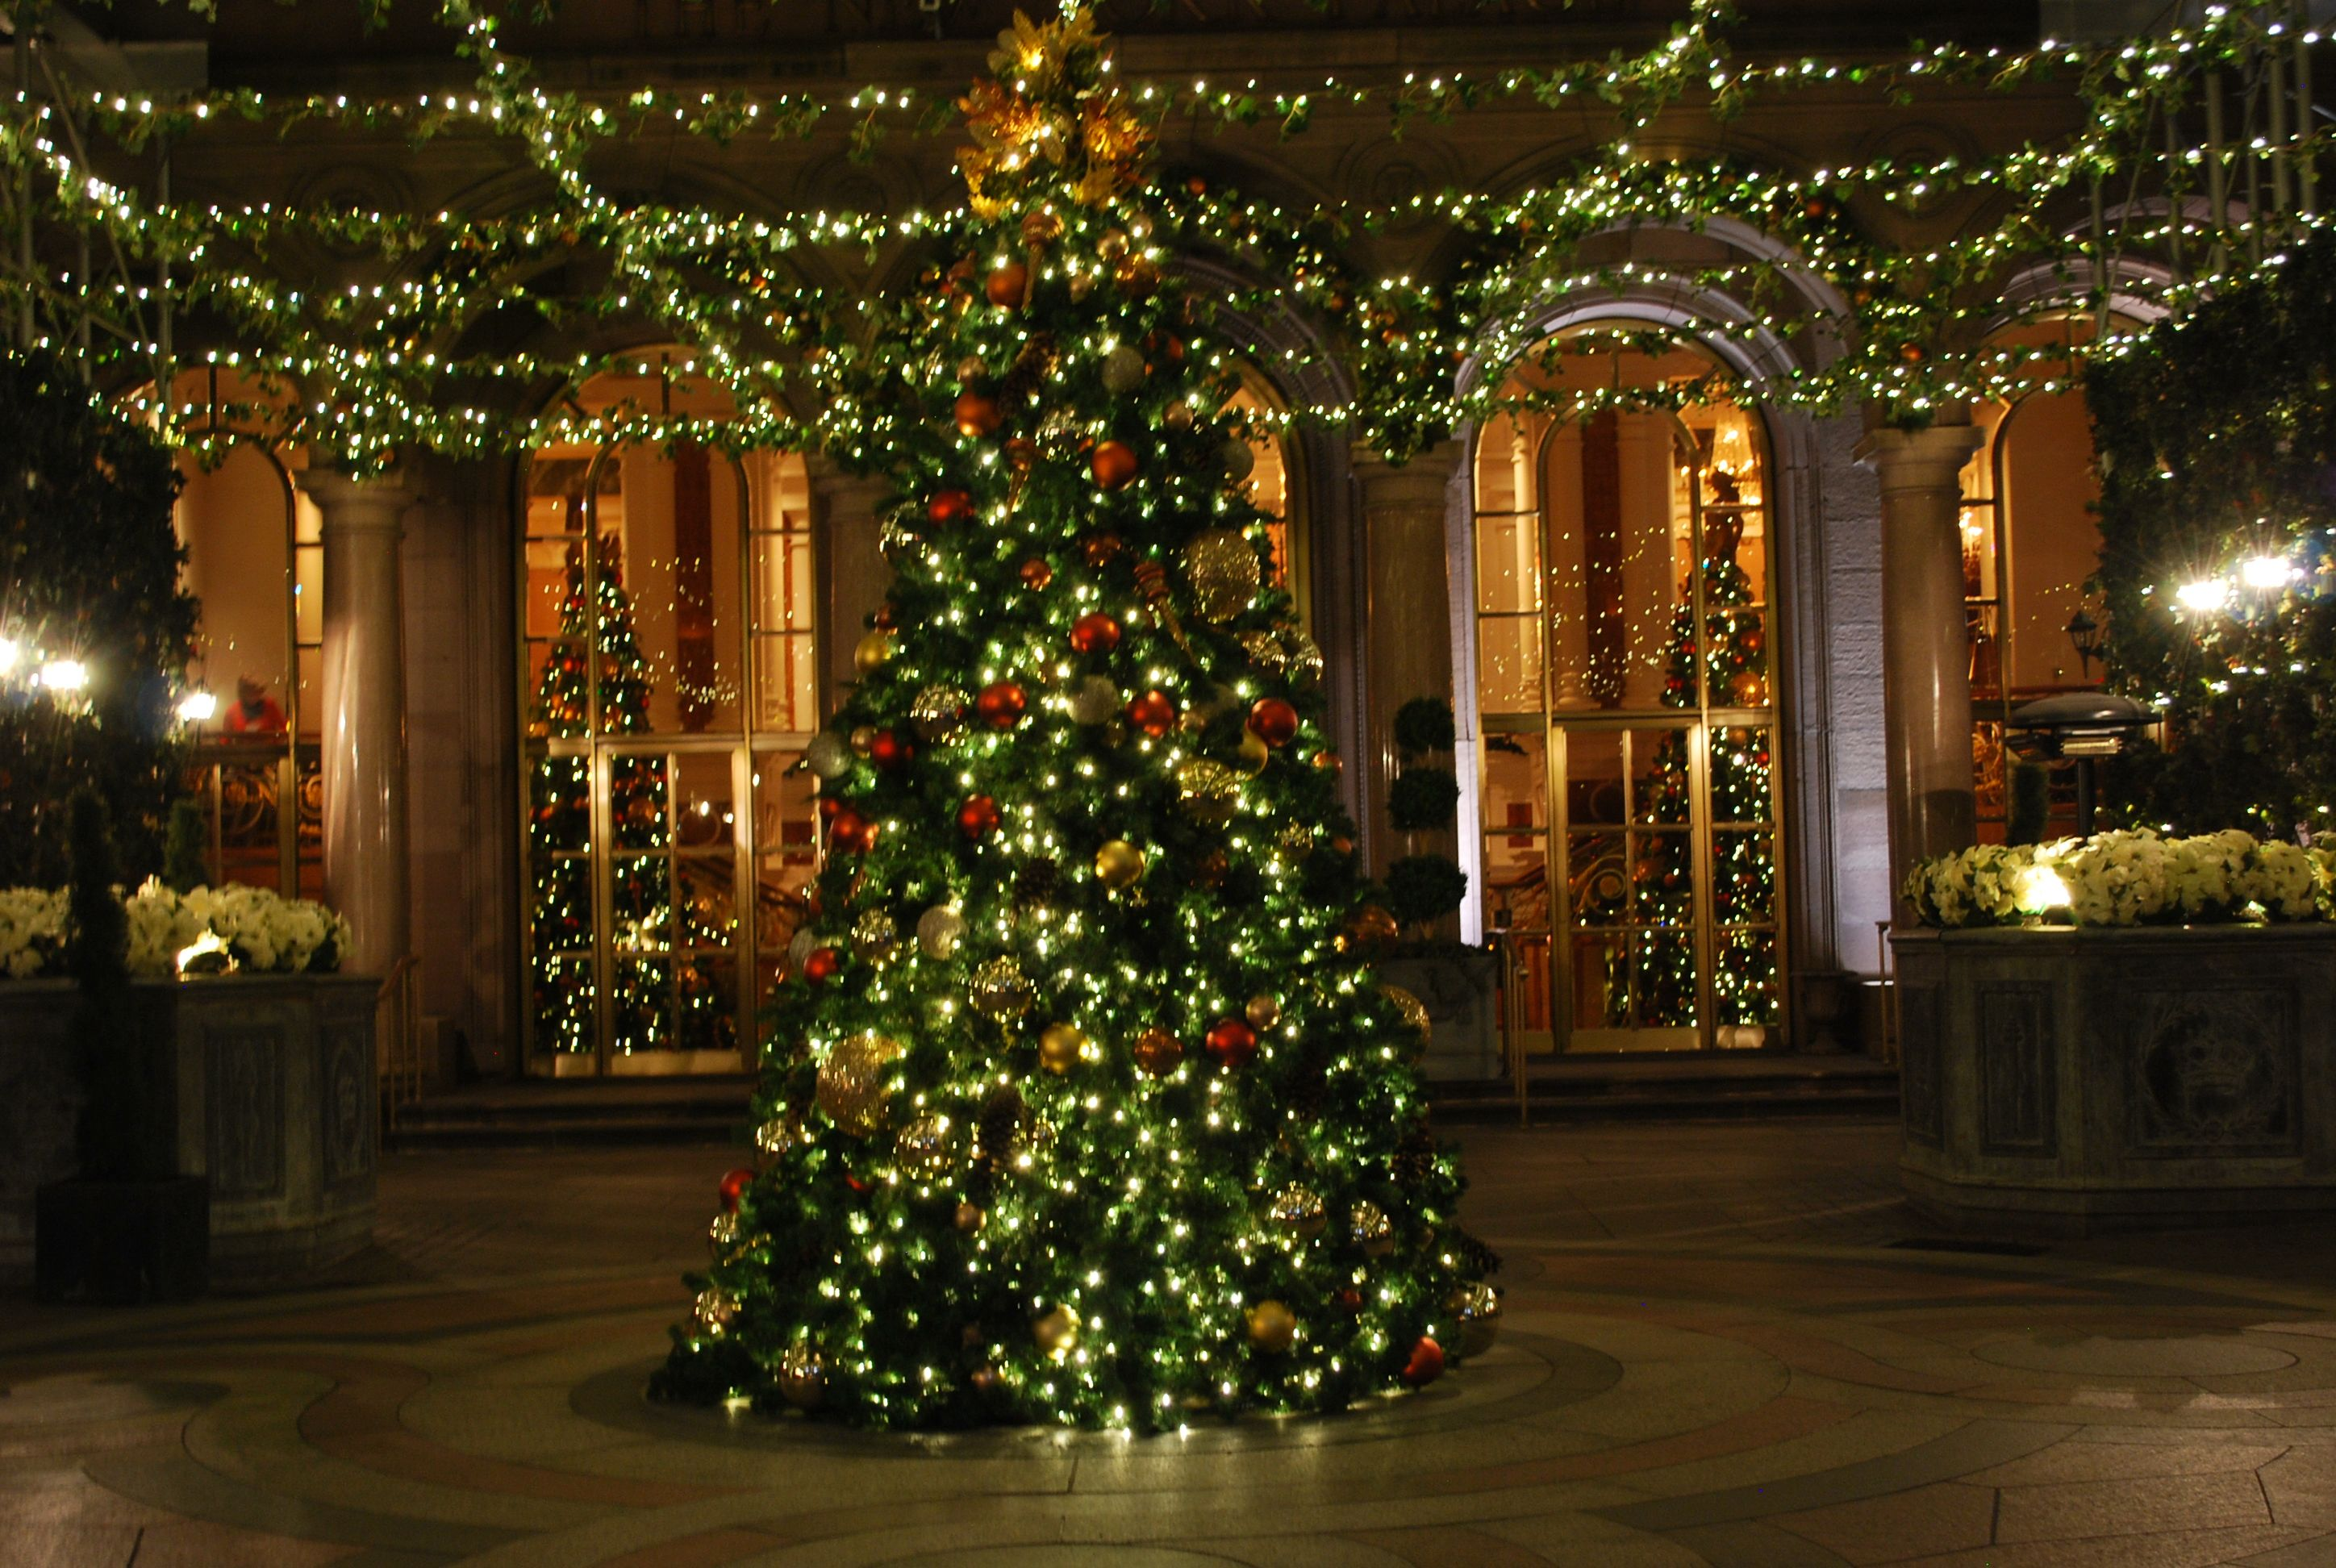 Christmas tree in NY | Photography | Pinterest | Christmas tree and ...